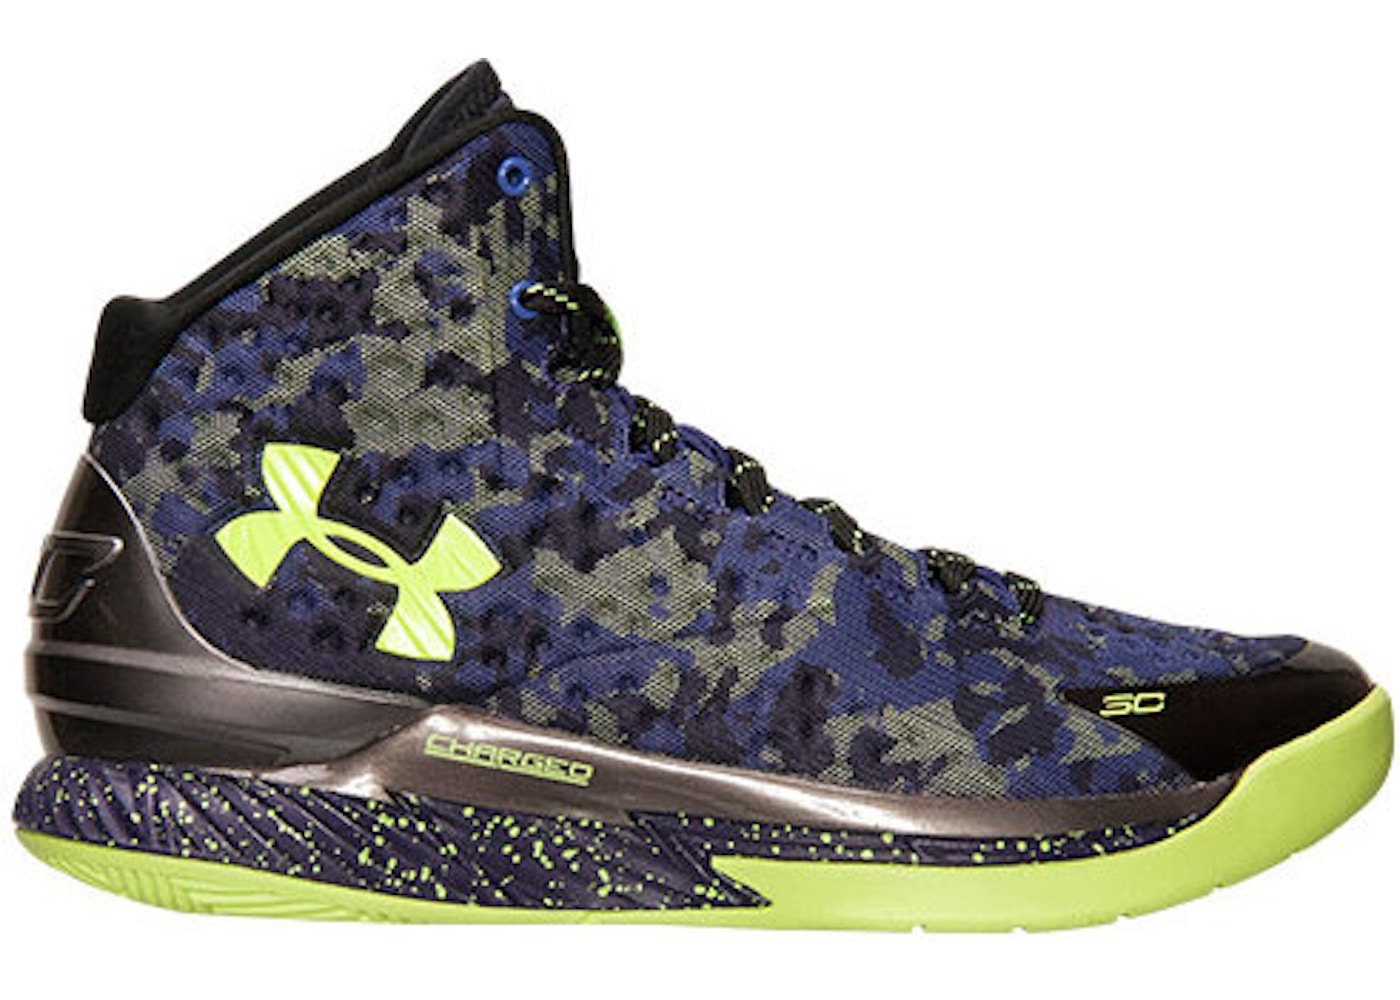 c3938518e267 UA Curry 1 Dark Matter (ASG) - 1258723-005